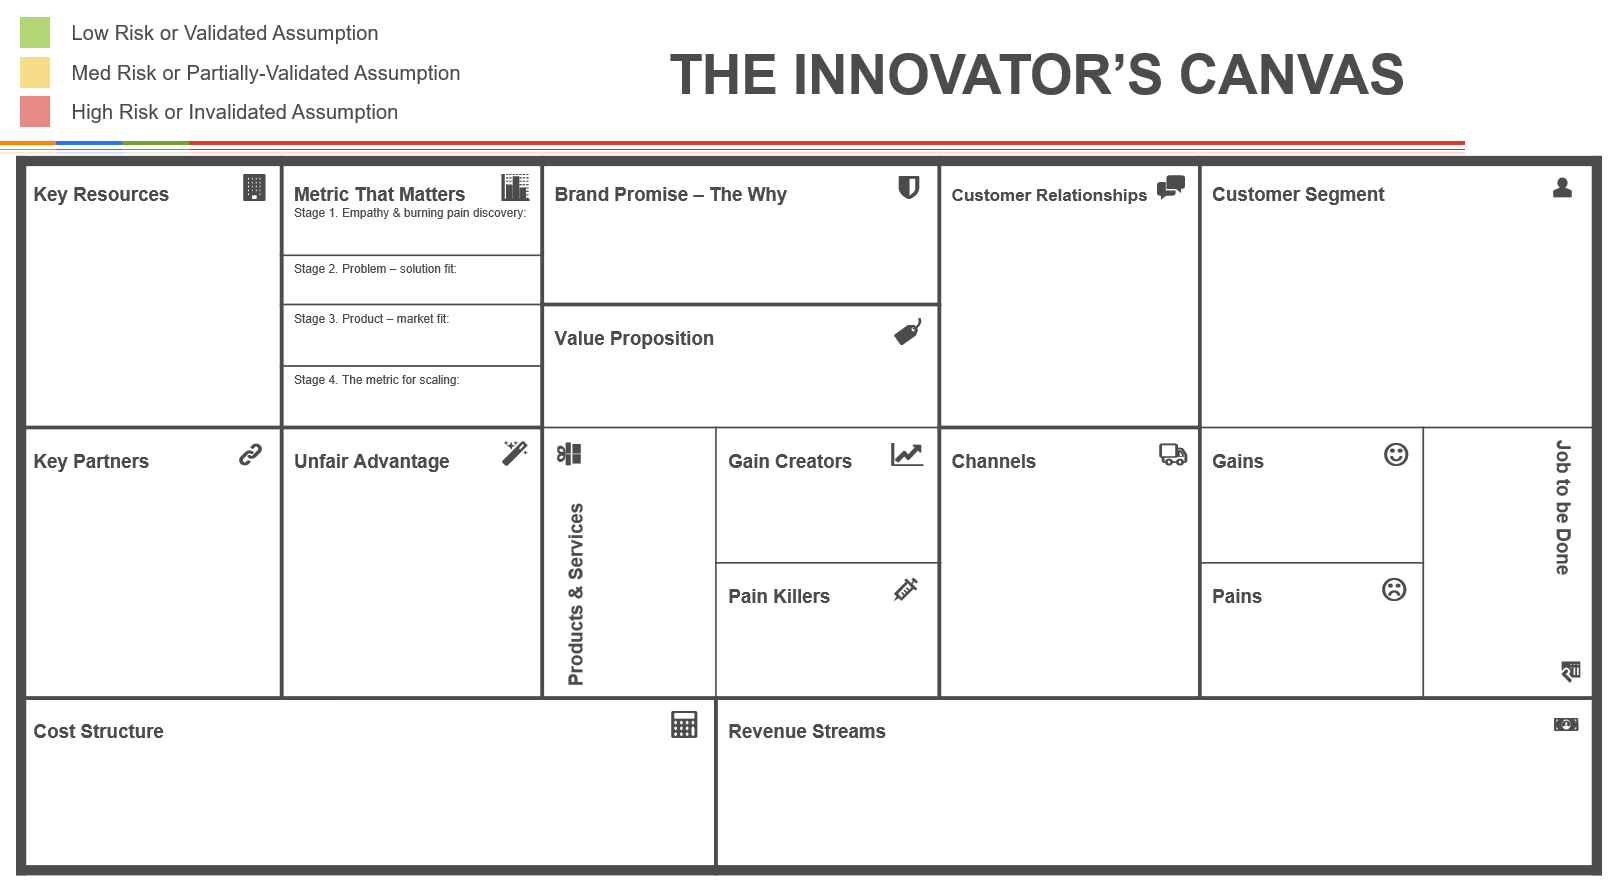 the Innovators canvas